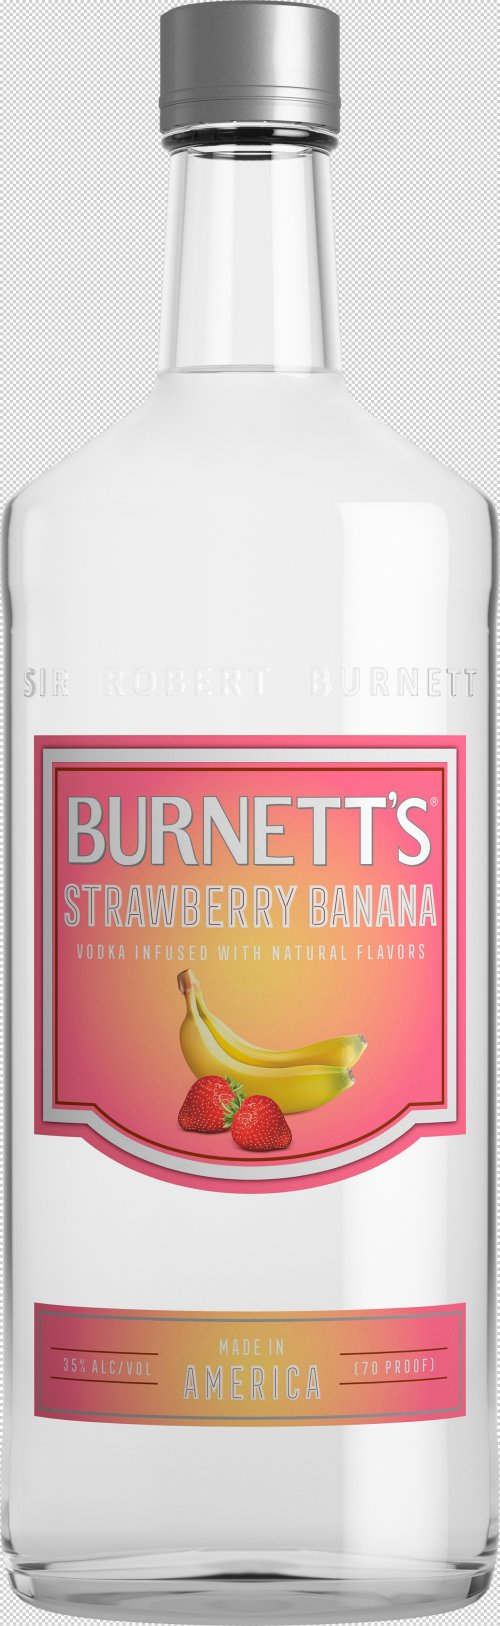 Burnetts Strawberry Banana